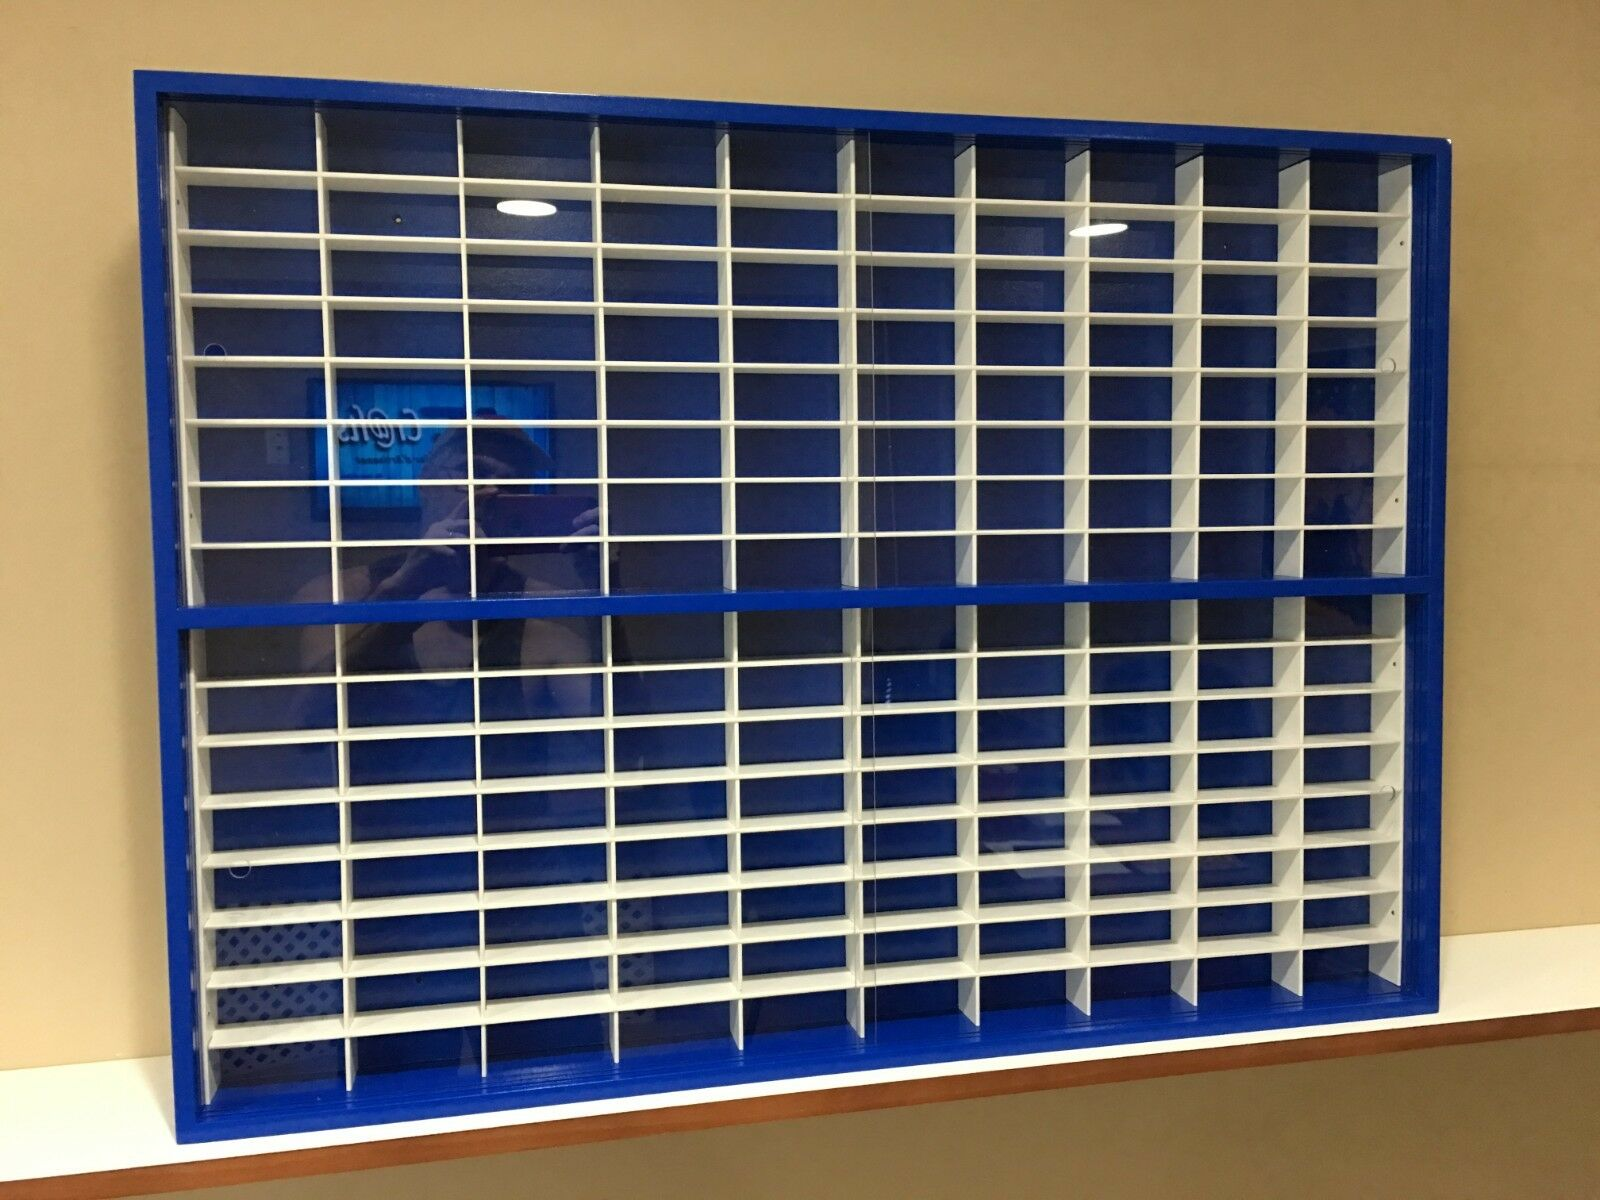 Display case cabinet for 1 64 diecast scale cars (hot wheels, matchbox) 160NBW-9